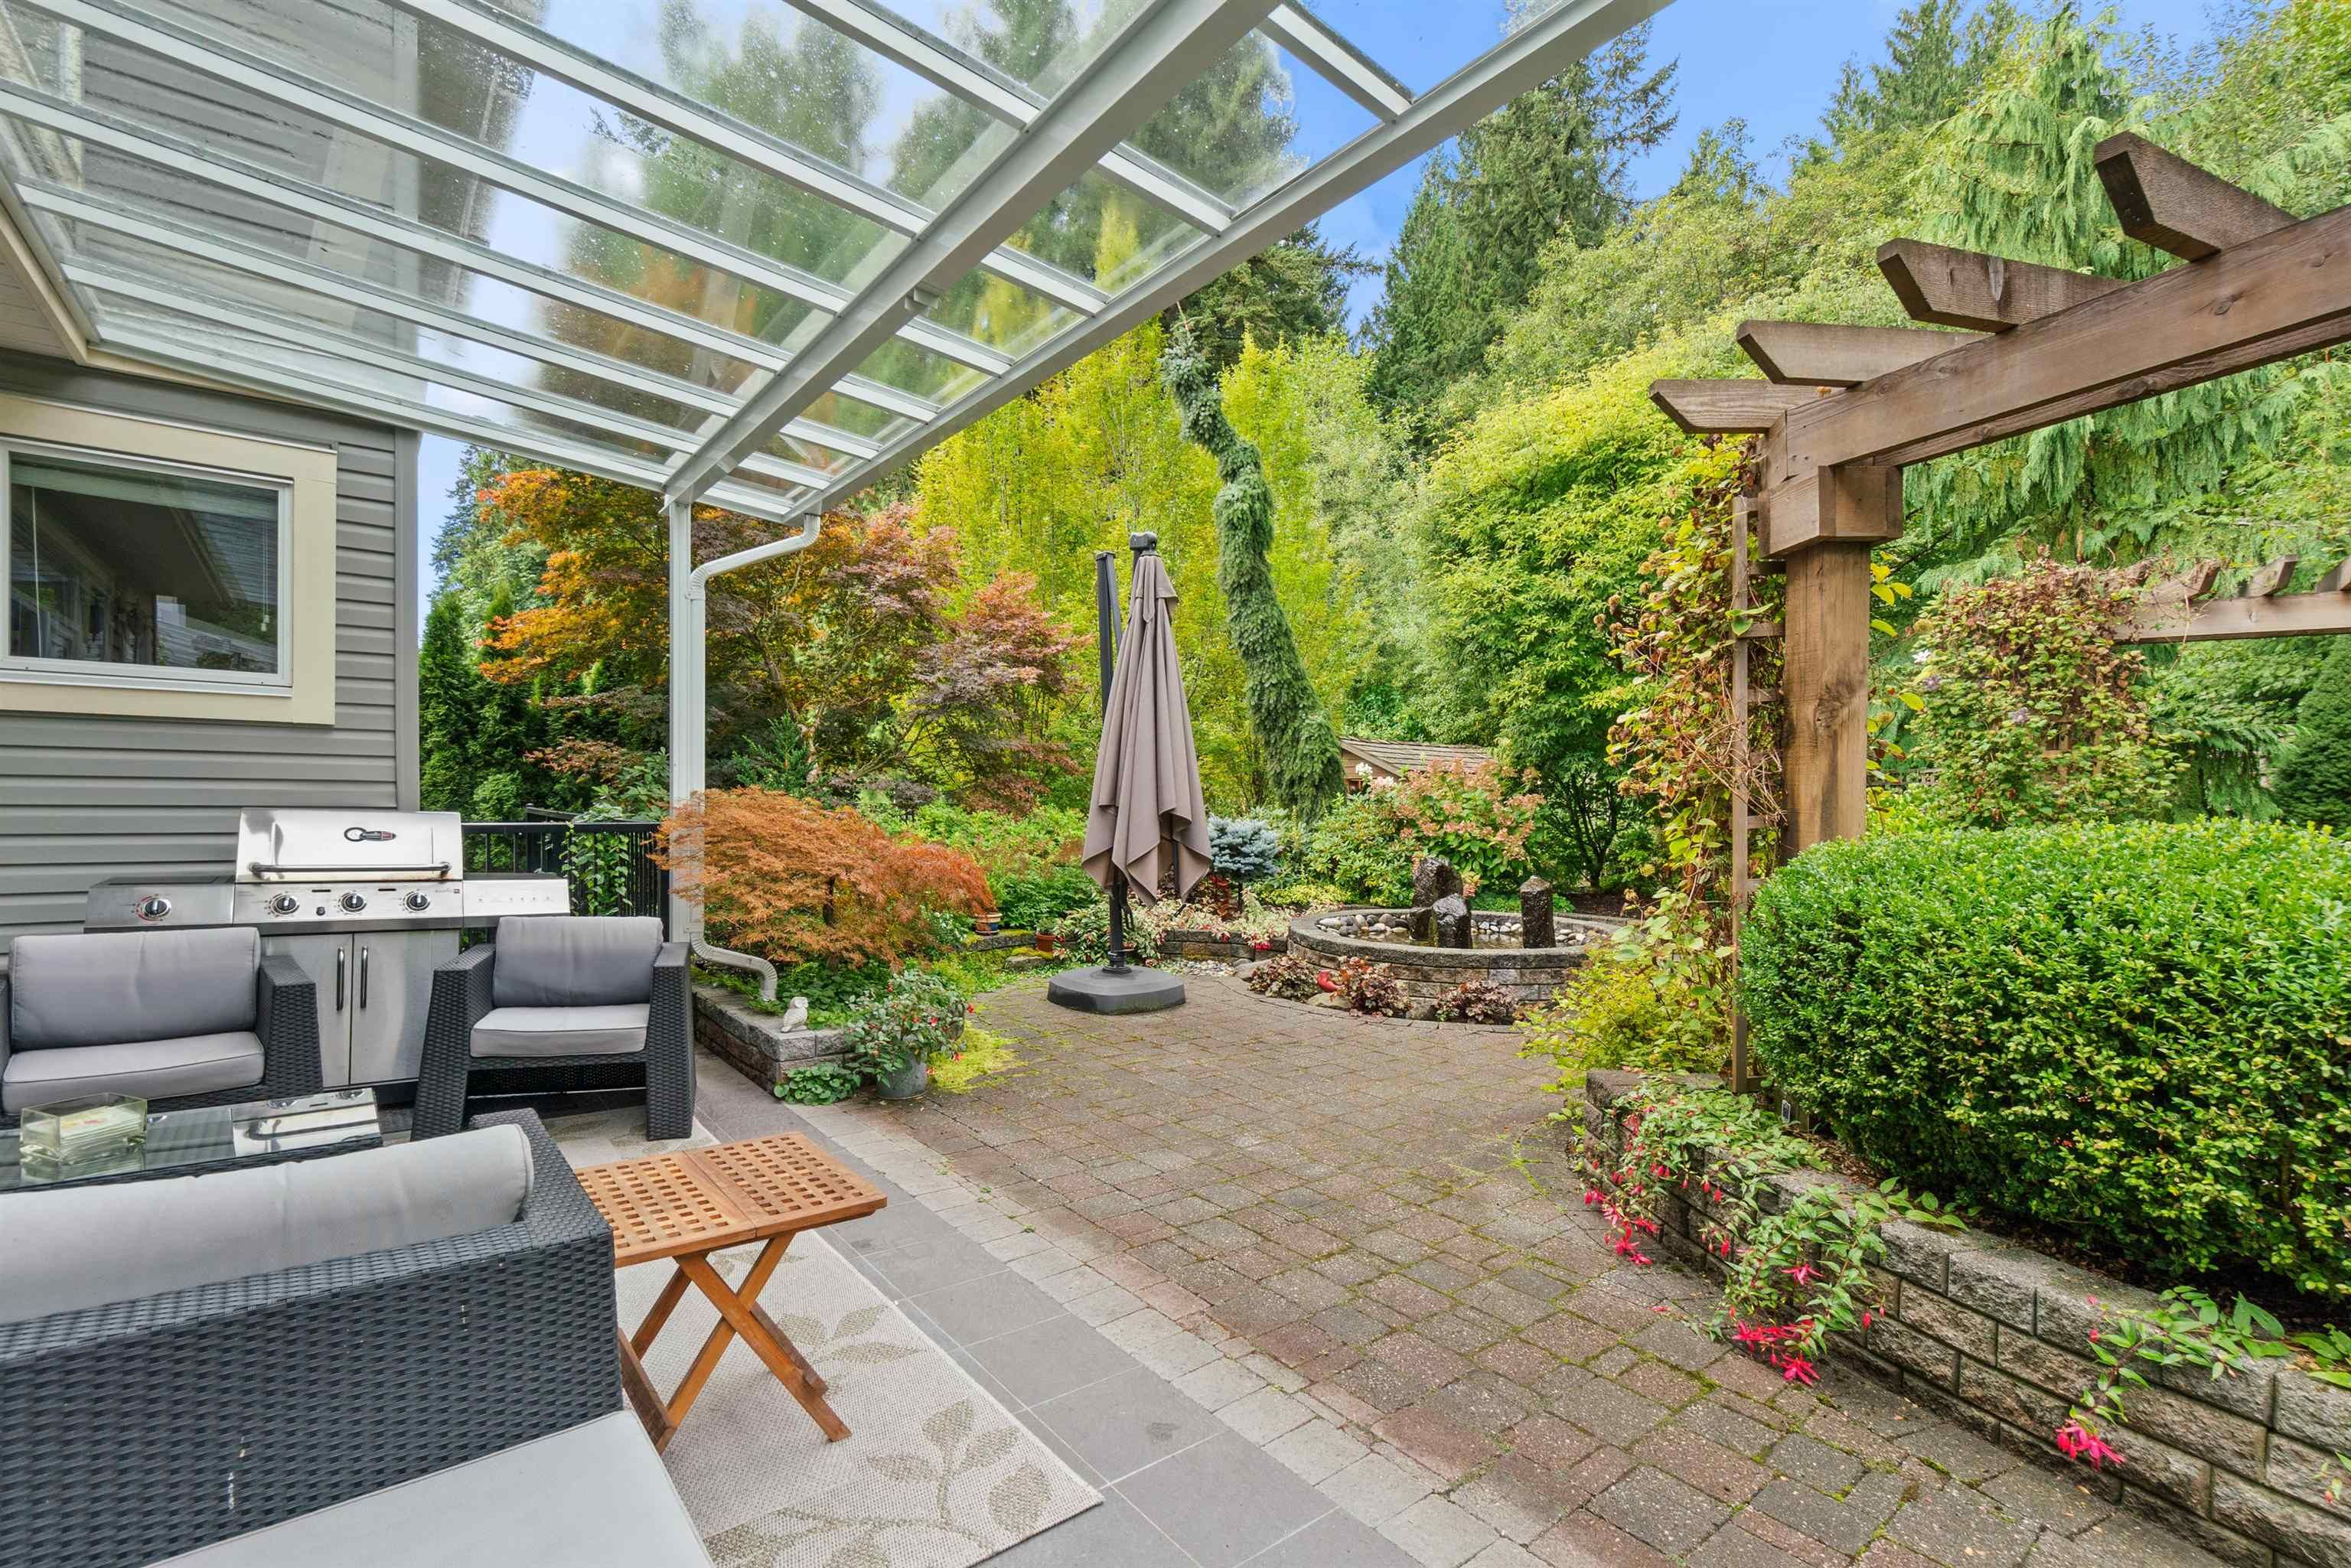 """Main Photo: 3350 DEVONSHIRE Avenue in Coquitlam: Burke Mountain House for sale in """"BELMONT"""" : MLS®# R2617520"""